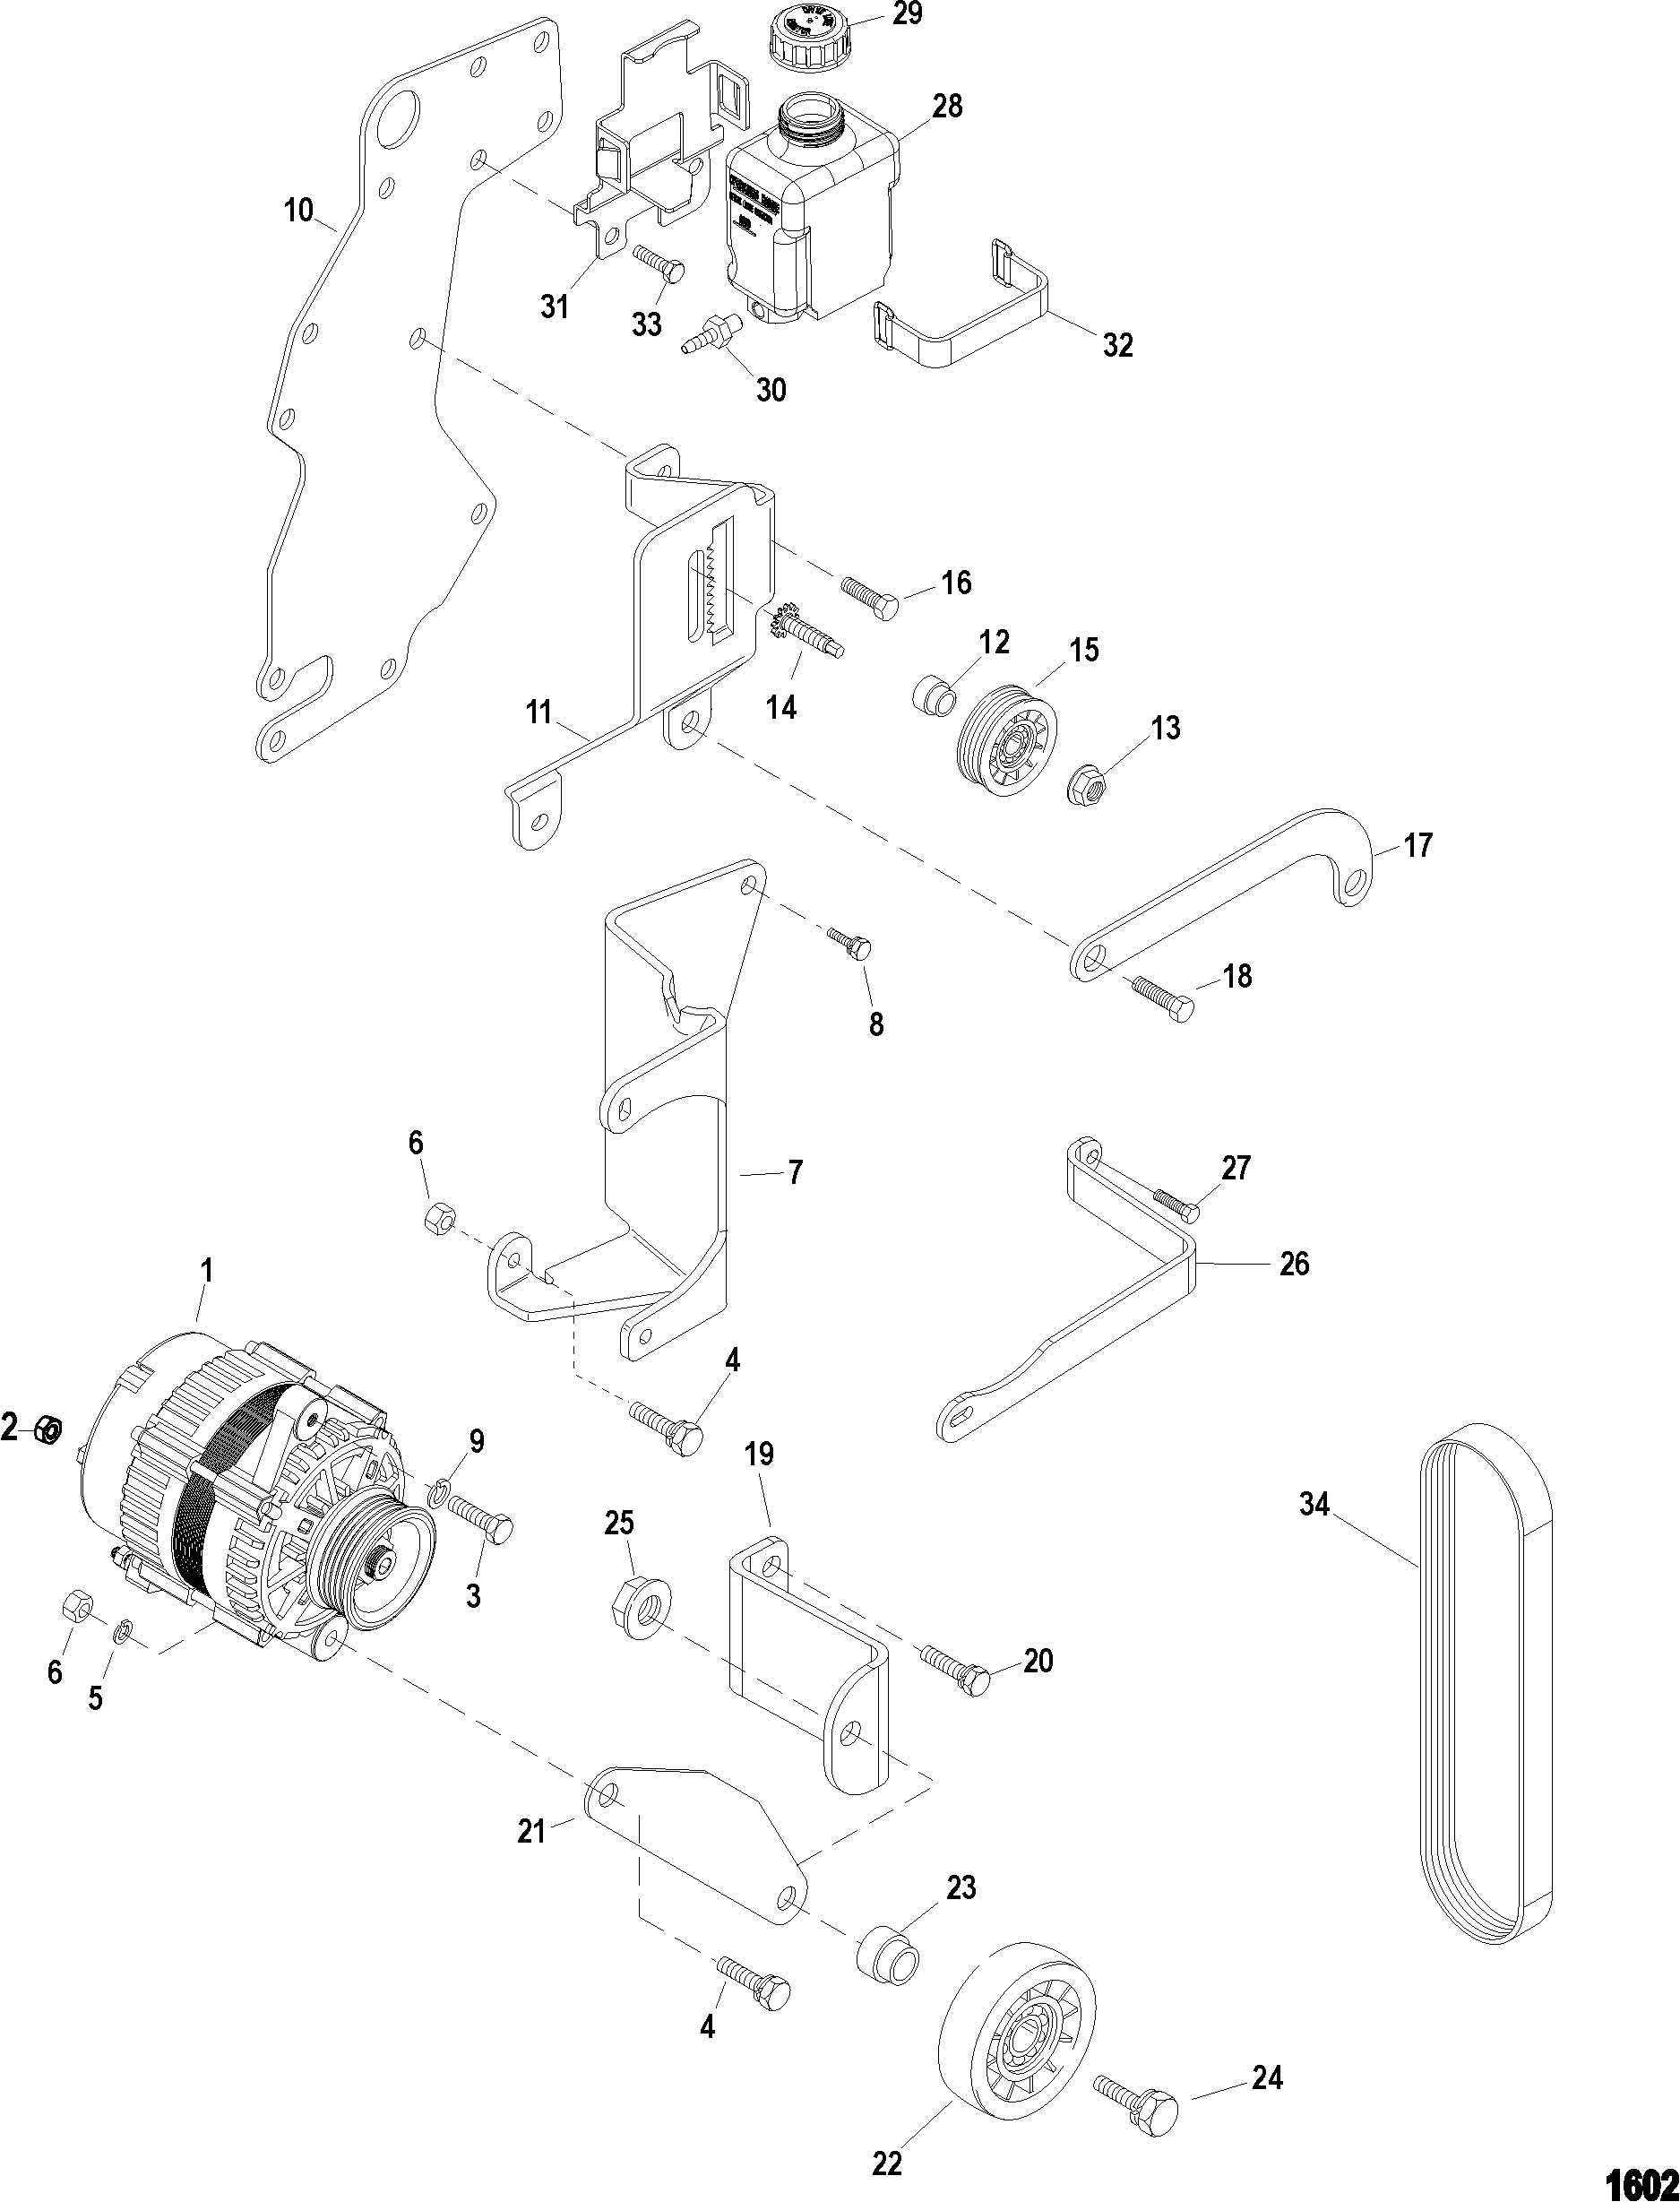 Alternator And Brackets FOR MERCRUISER 4.3L MPI ALPHA